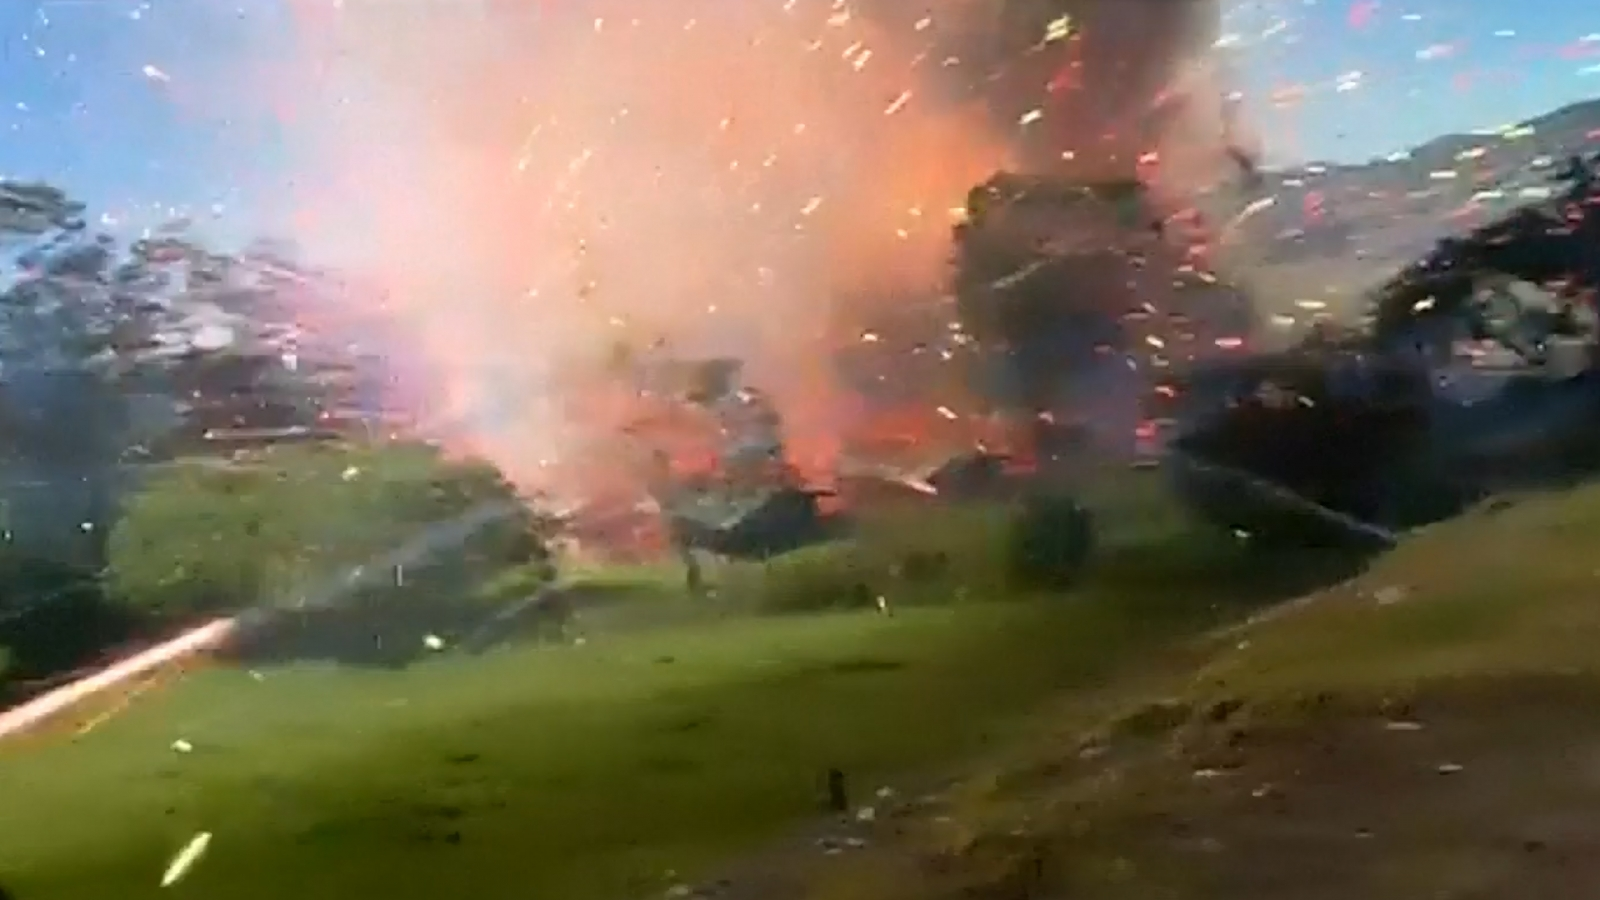 Colombia fireworks factory explosion caught in dramatic video